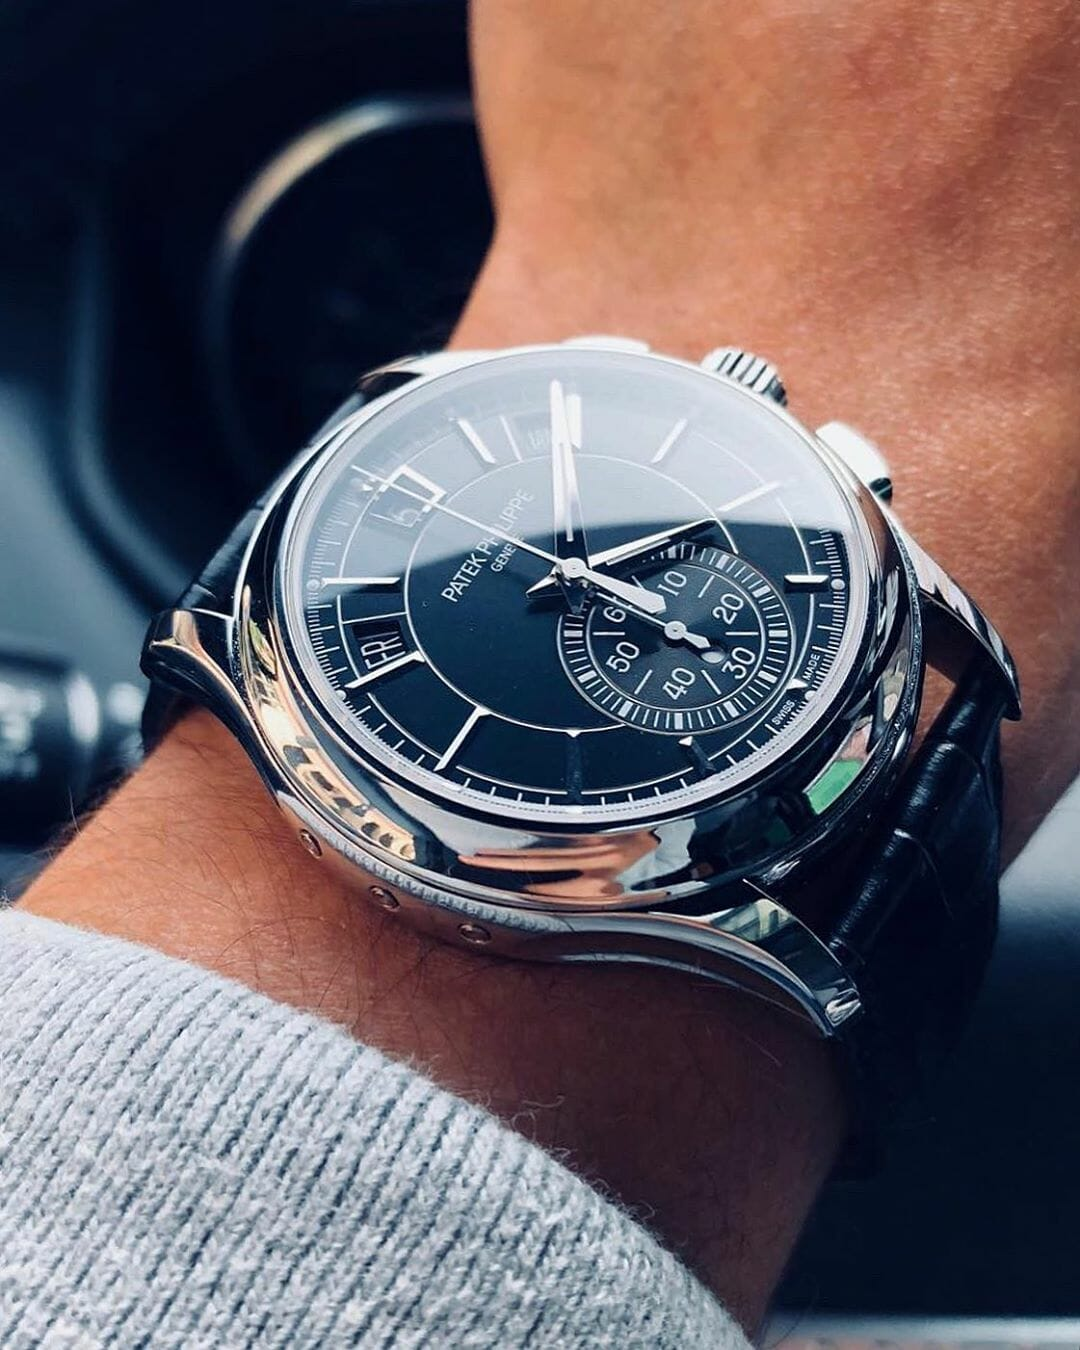 10 Patek Philippe 5905P by IG @watchrookiee